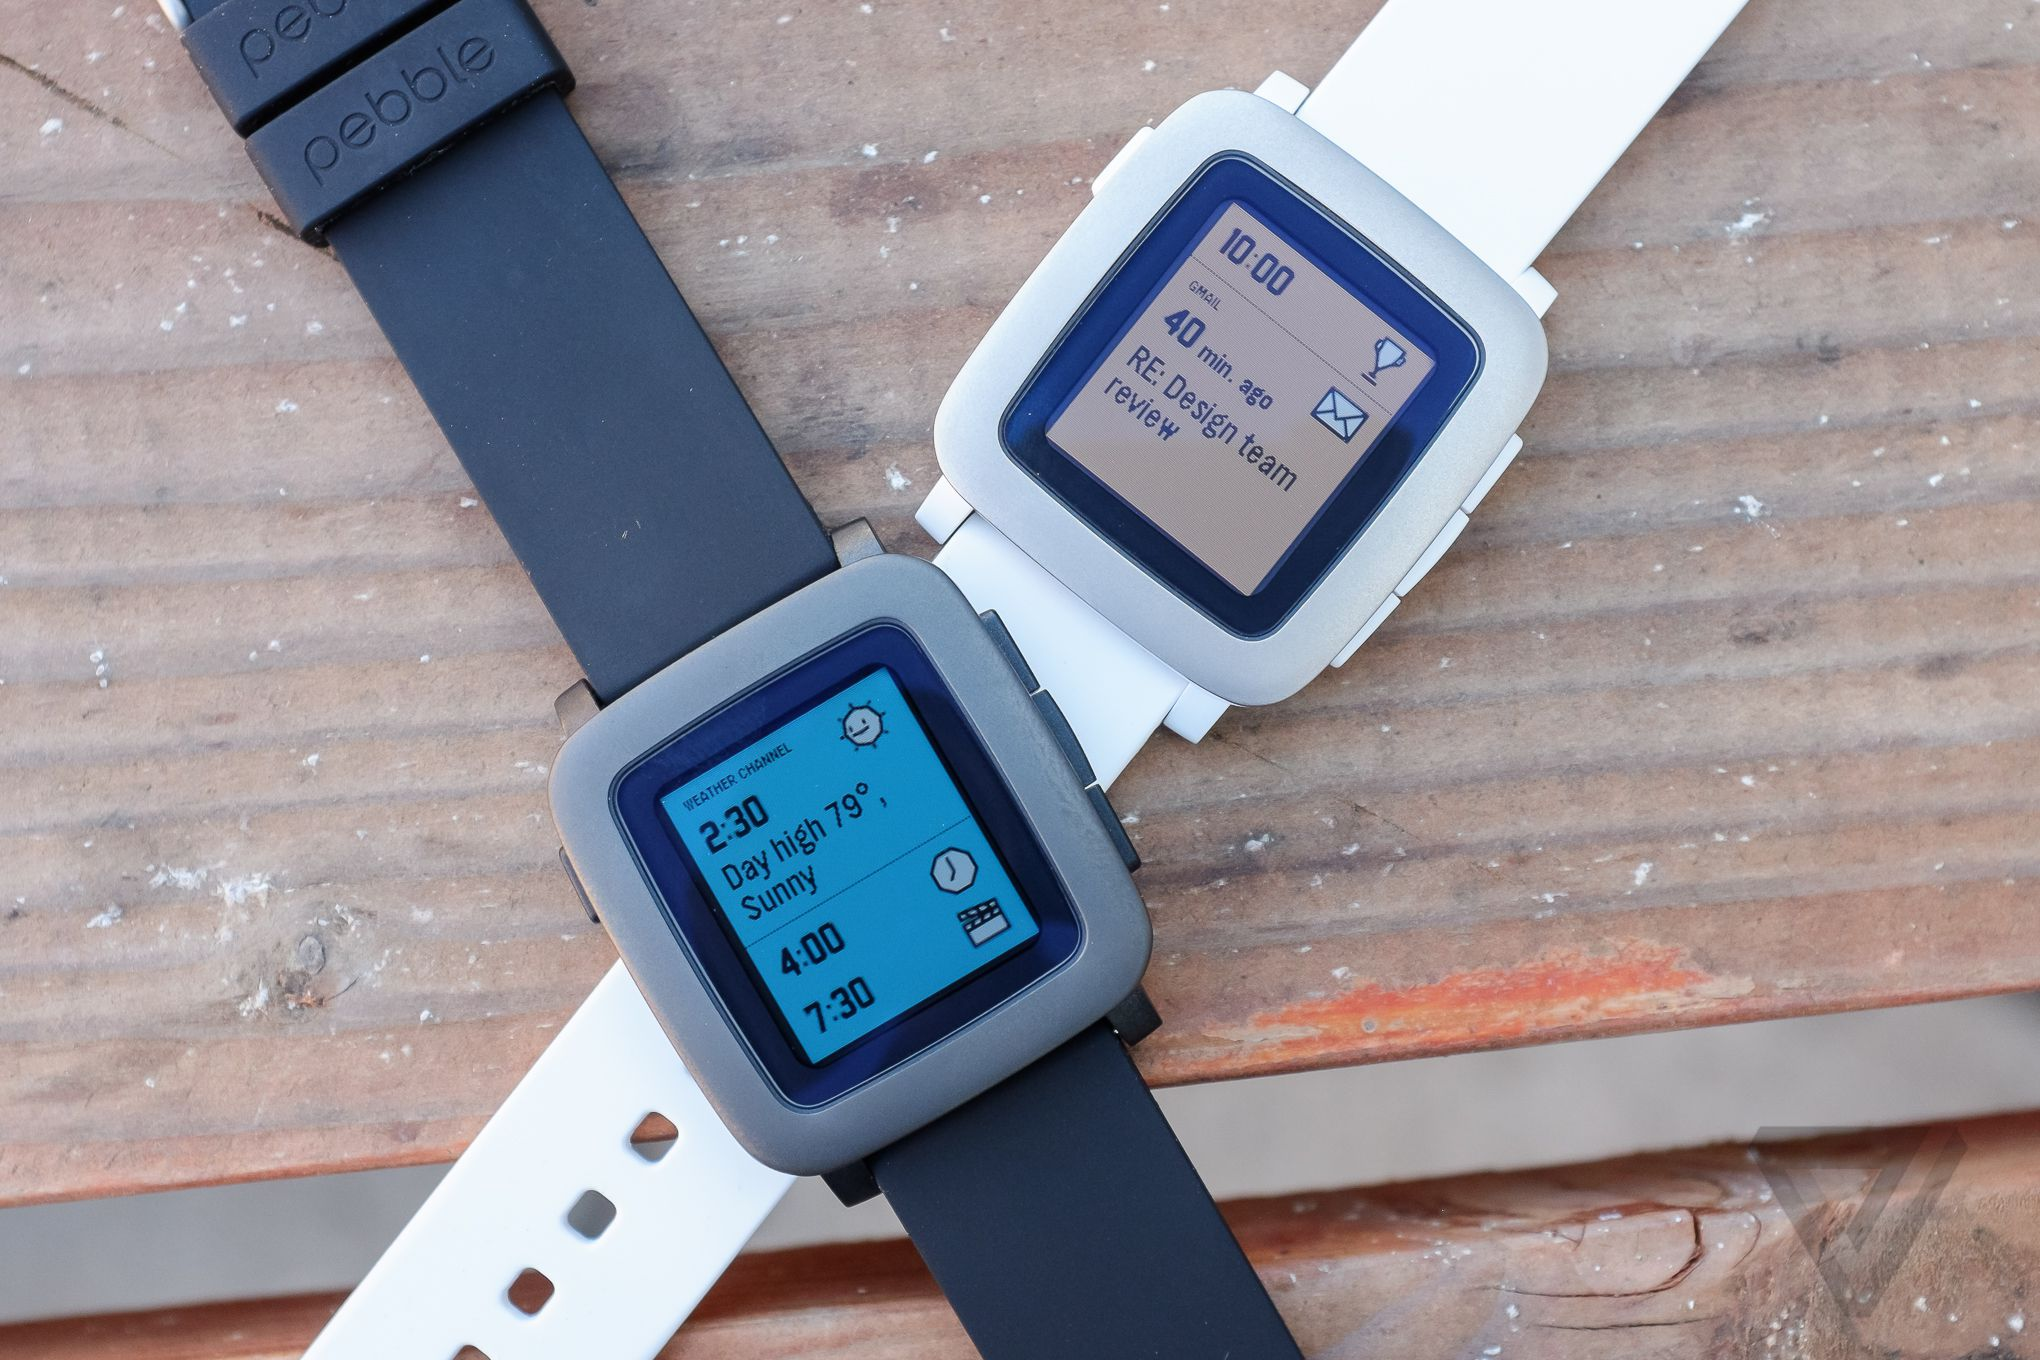 Making Time: how Pebble built its next smartwatch | The Verge